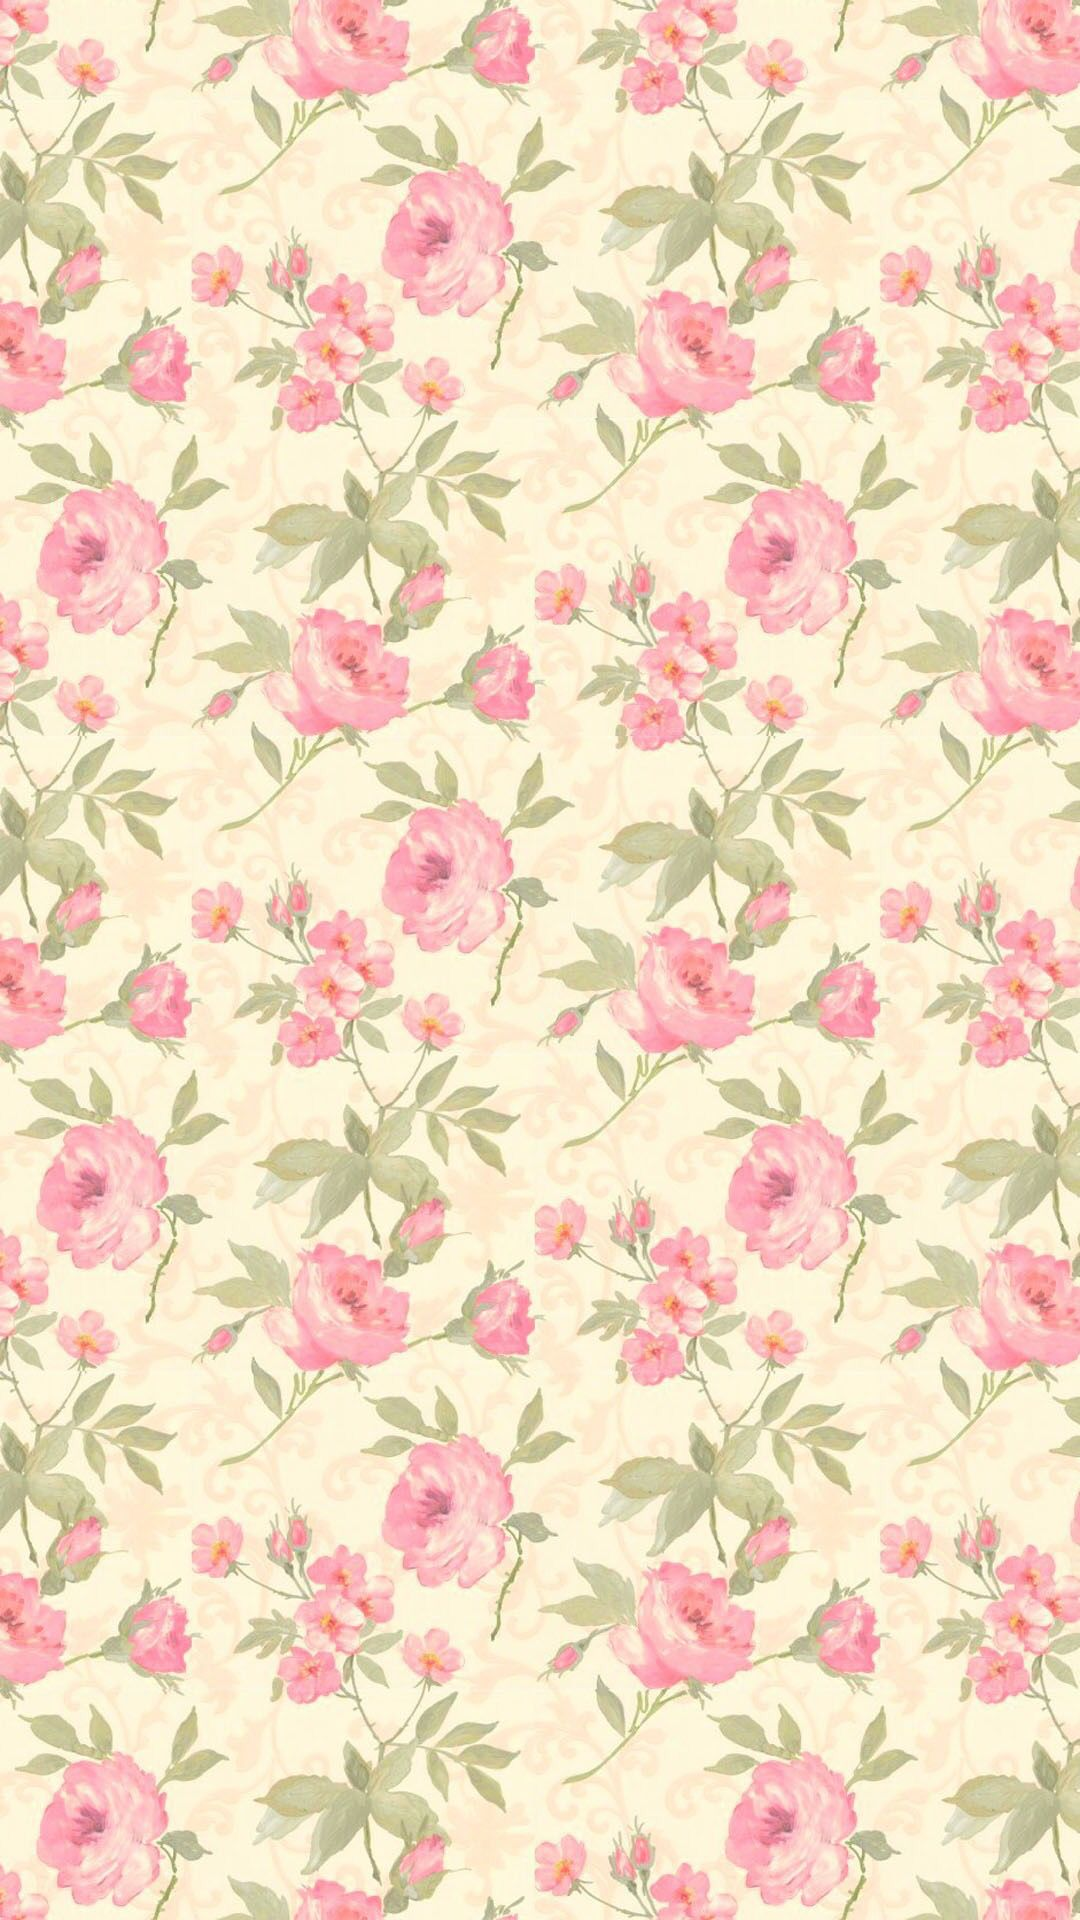 Free Fall Mobile Phone Wallpapers Pin By Estelle Hamman On 1 Art Floral Pinterest